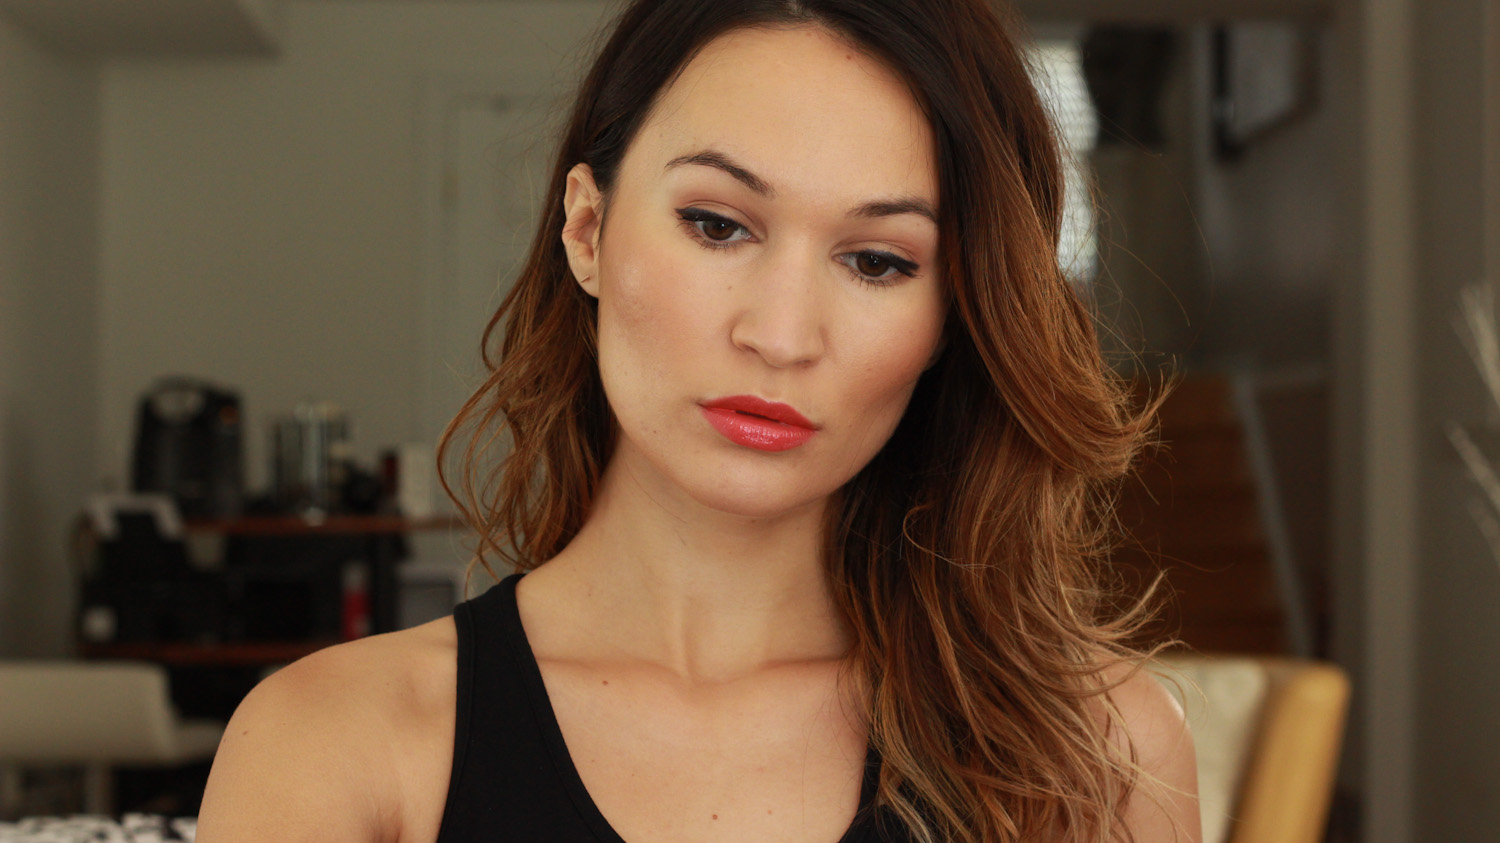 Daytime makeup with the Laura Mercier Artist's Palette